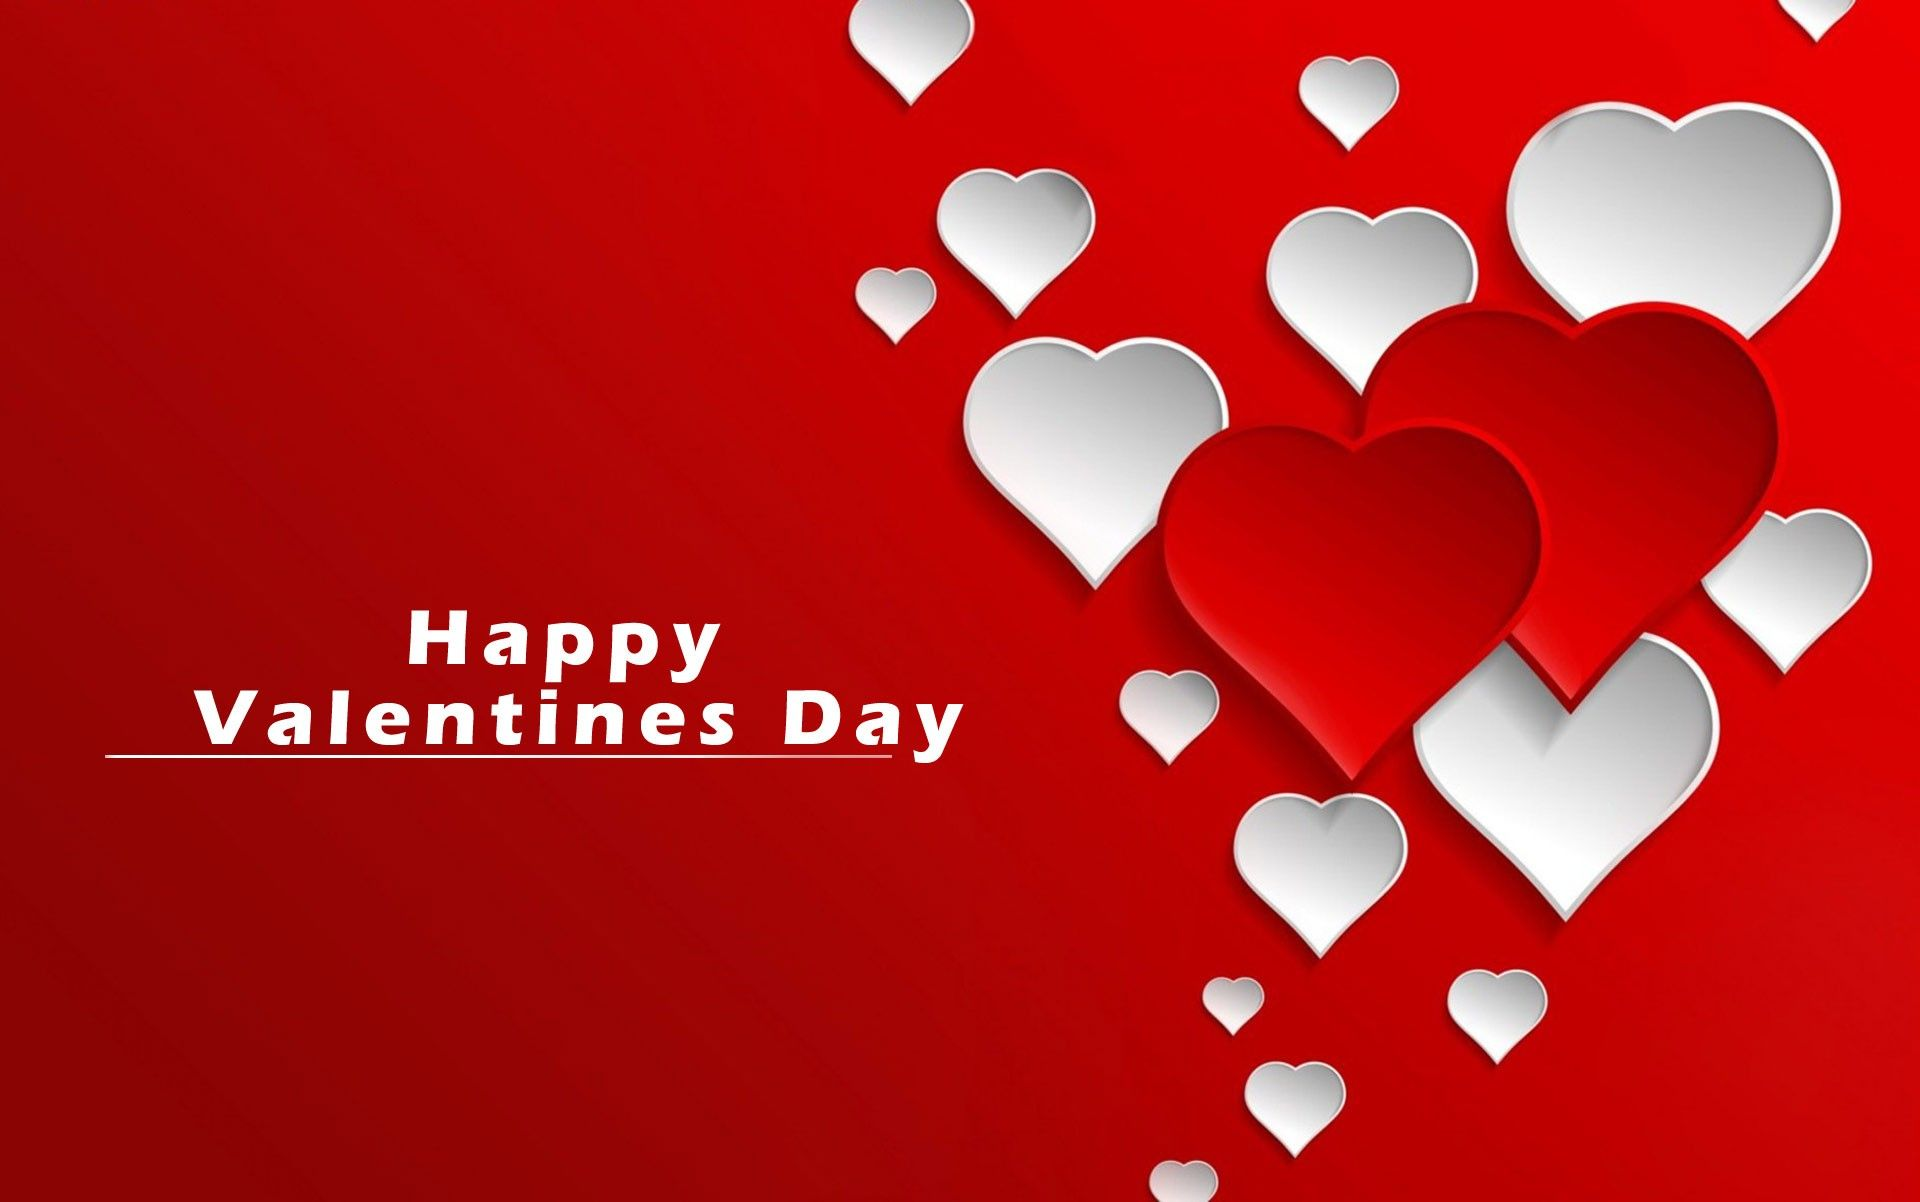 Happy Valentines Day Wallpapers Download Valentinesday Valentinesdayimages Cards Pictures Wallpapers